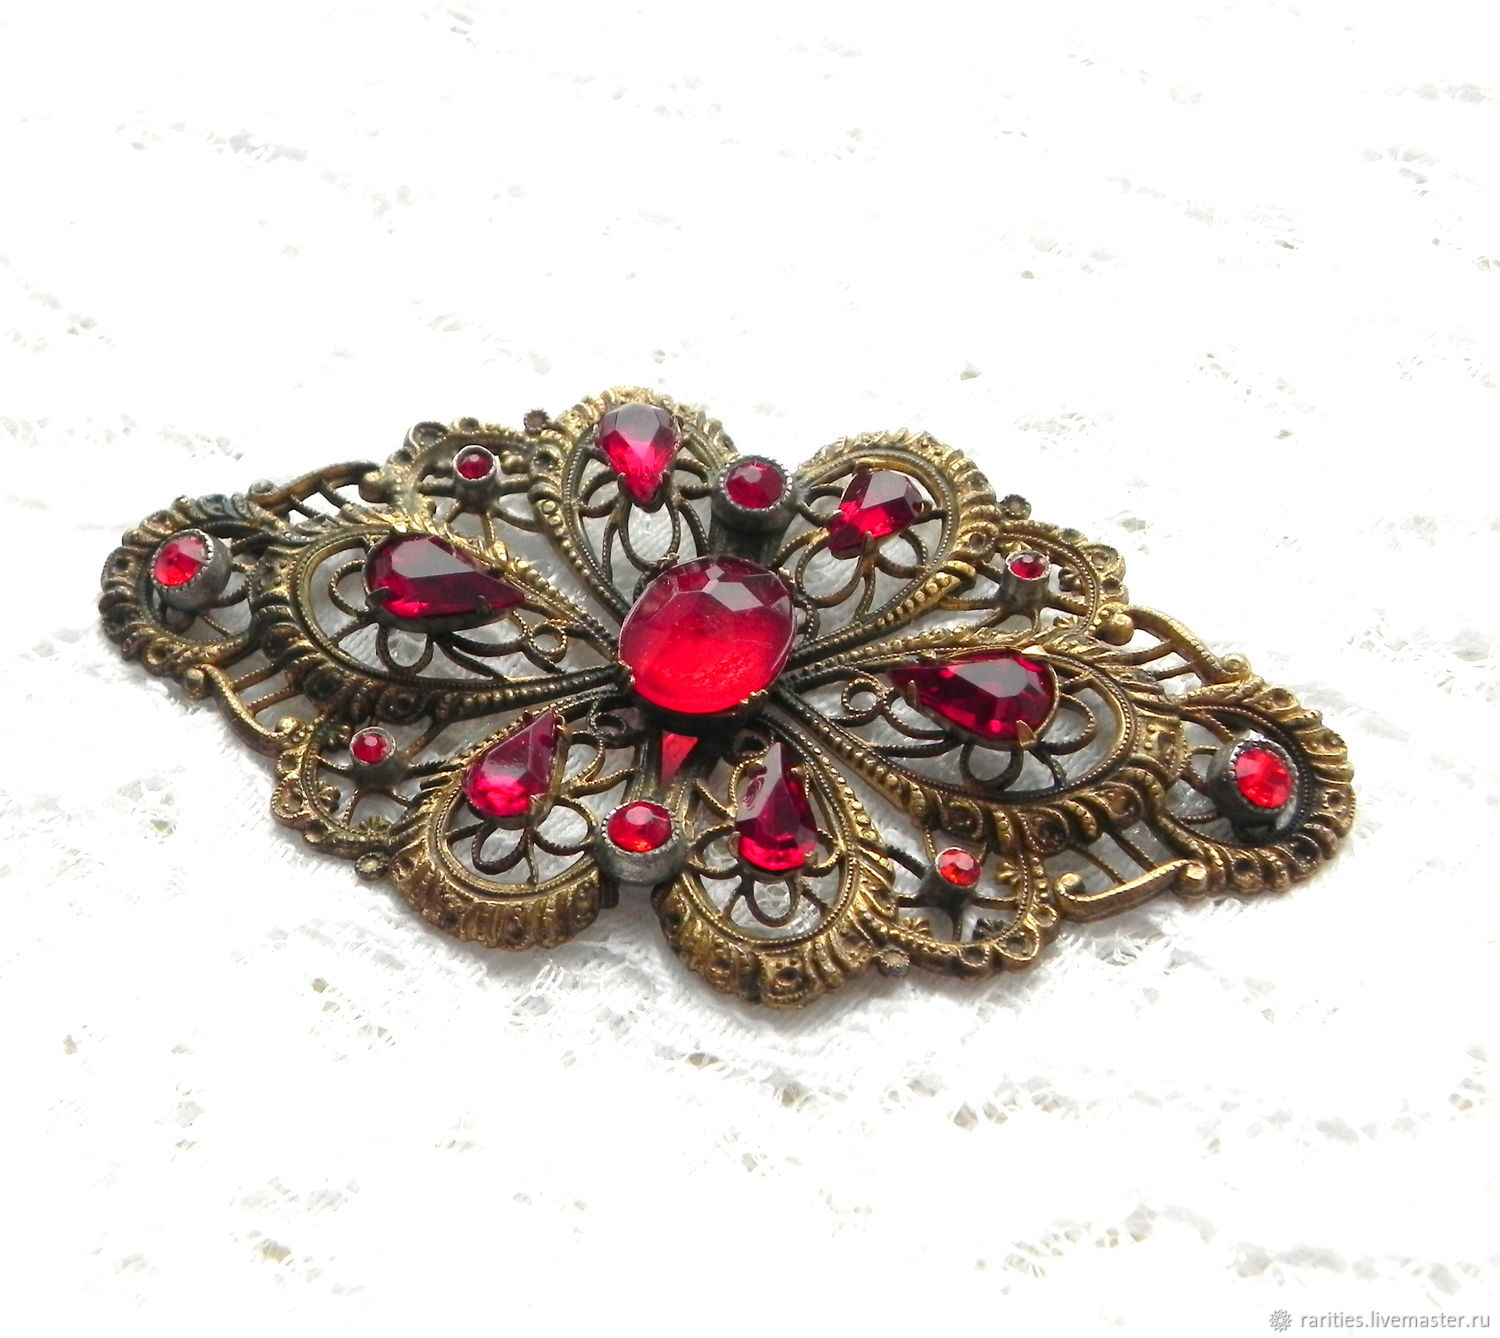 Brooch Rubies in lace, openwork brooch, ,20s-40s, Europe, gilding, Vintage brooches, Moscow,  Фото №1